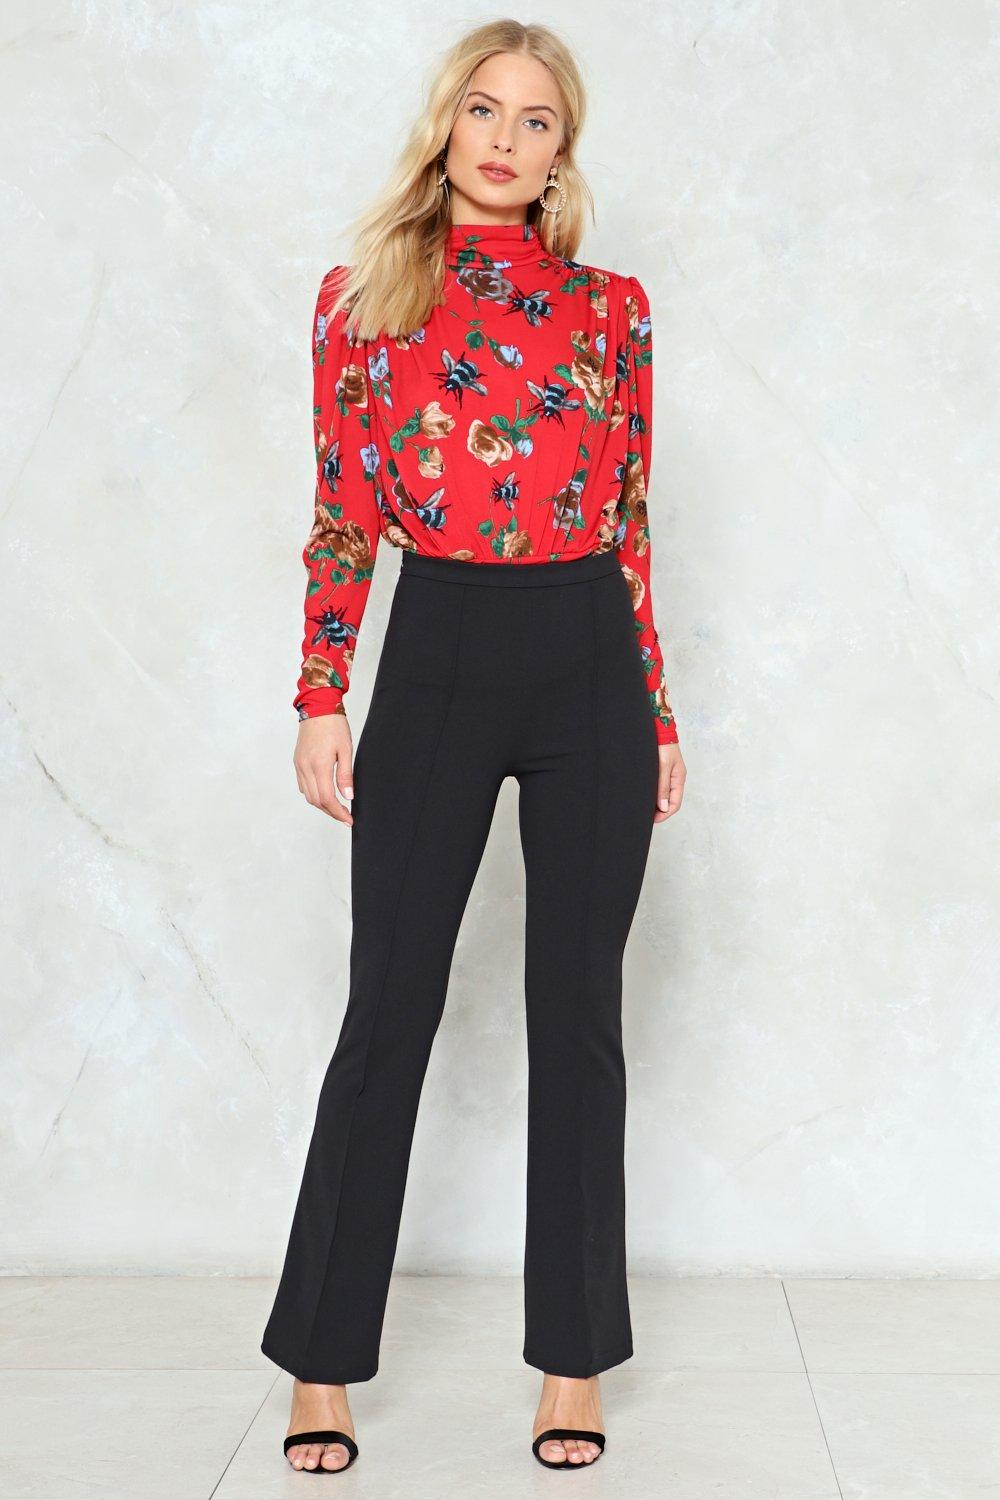 99a886f715 Double Flare You High-Waisted Pants | Shop Clothes at Nasty Gal!